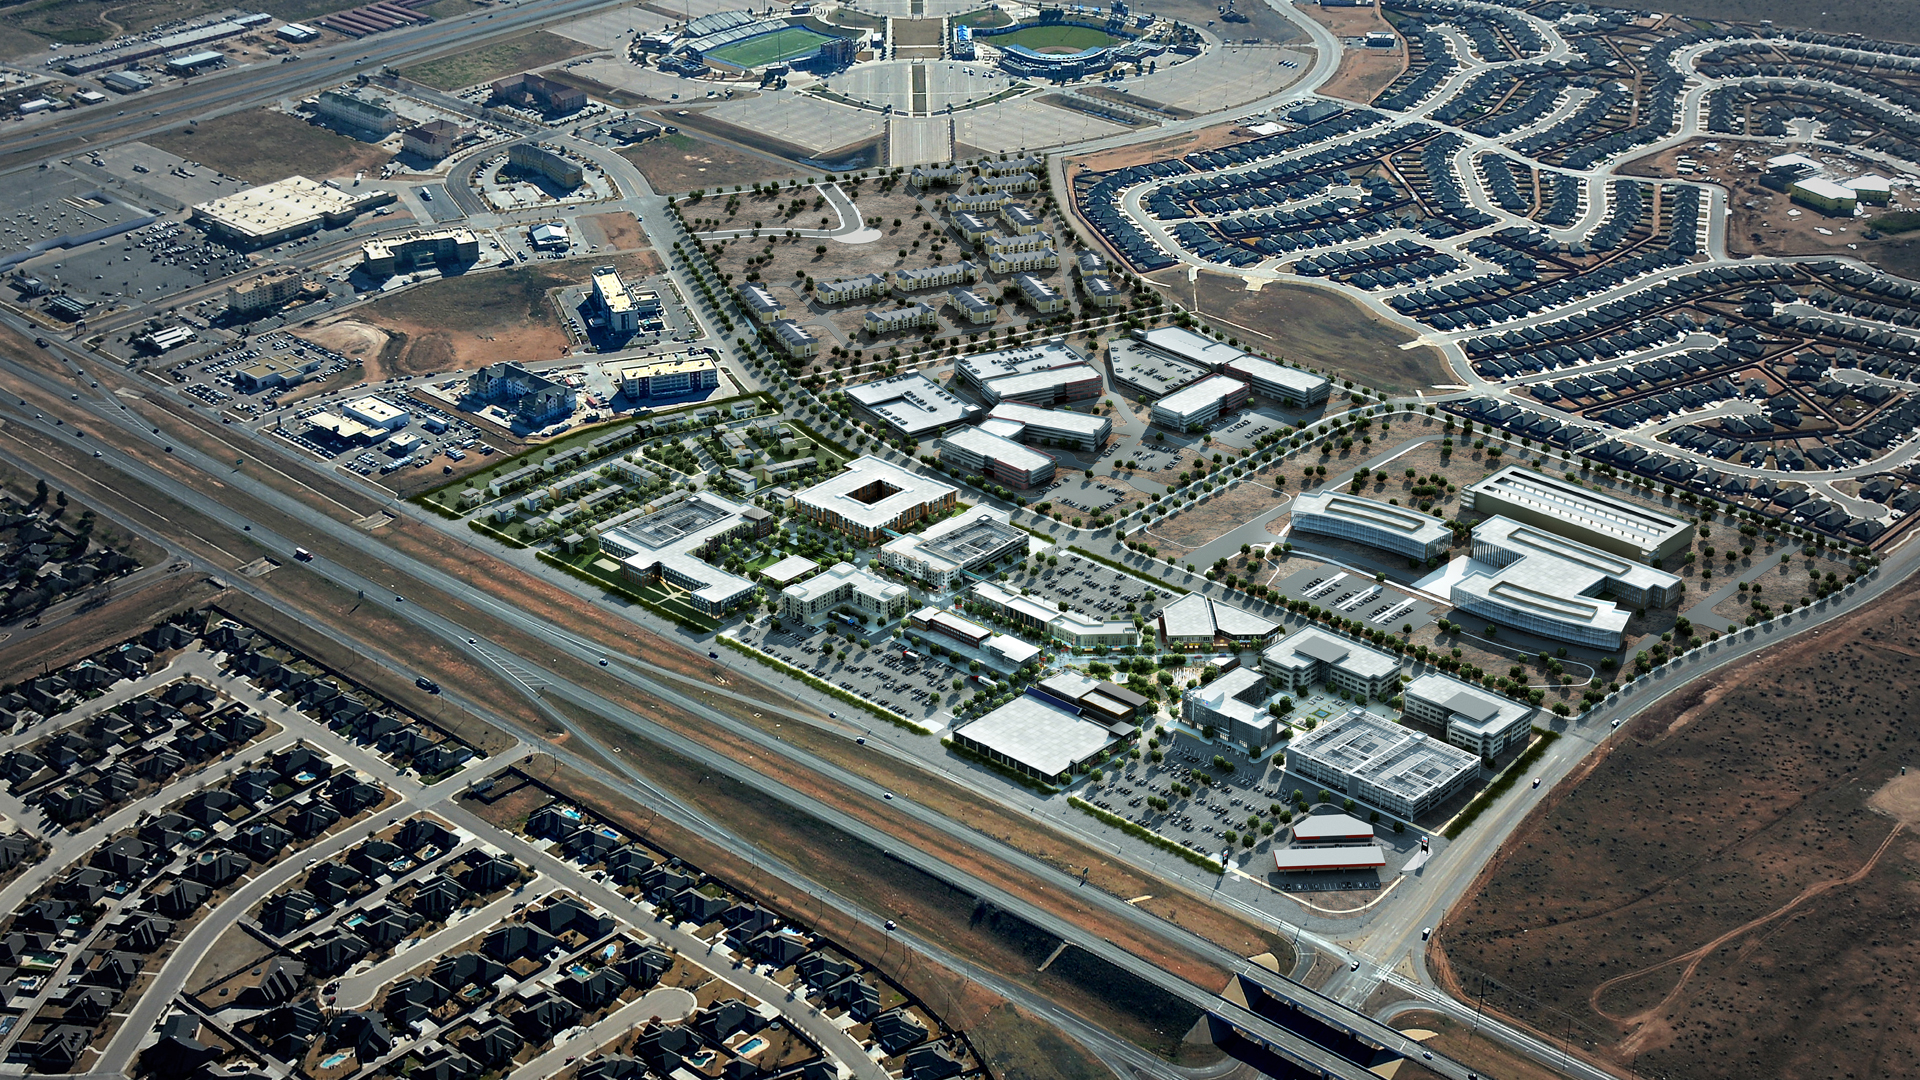 <p>At the epicenter of the North American shale oil play, Chevron and Oxy are both building new regional headquarters immediately across the street from the project.</p>